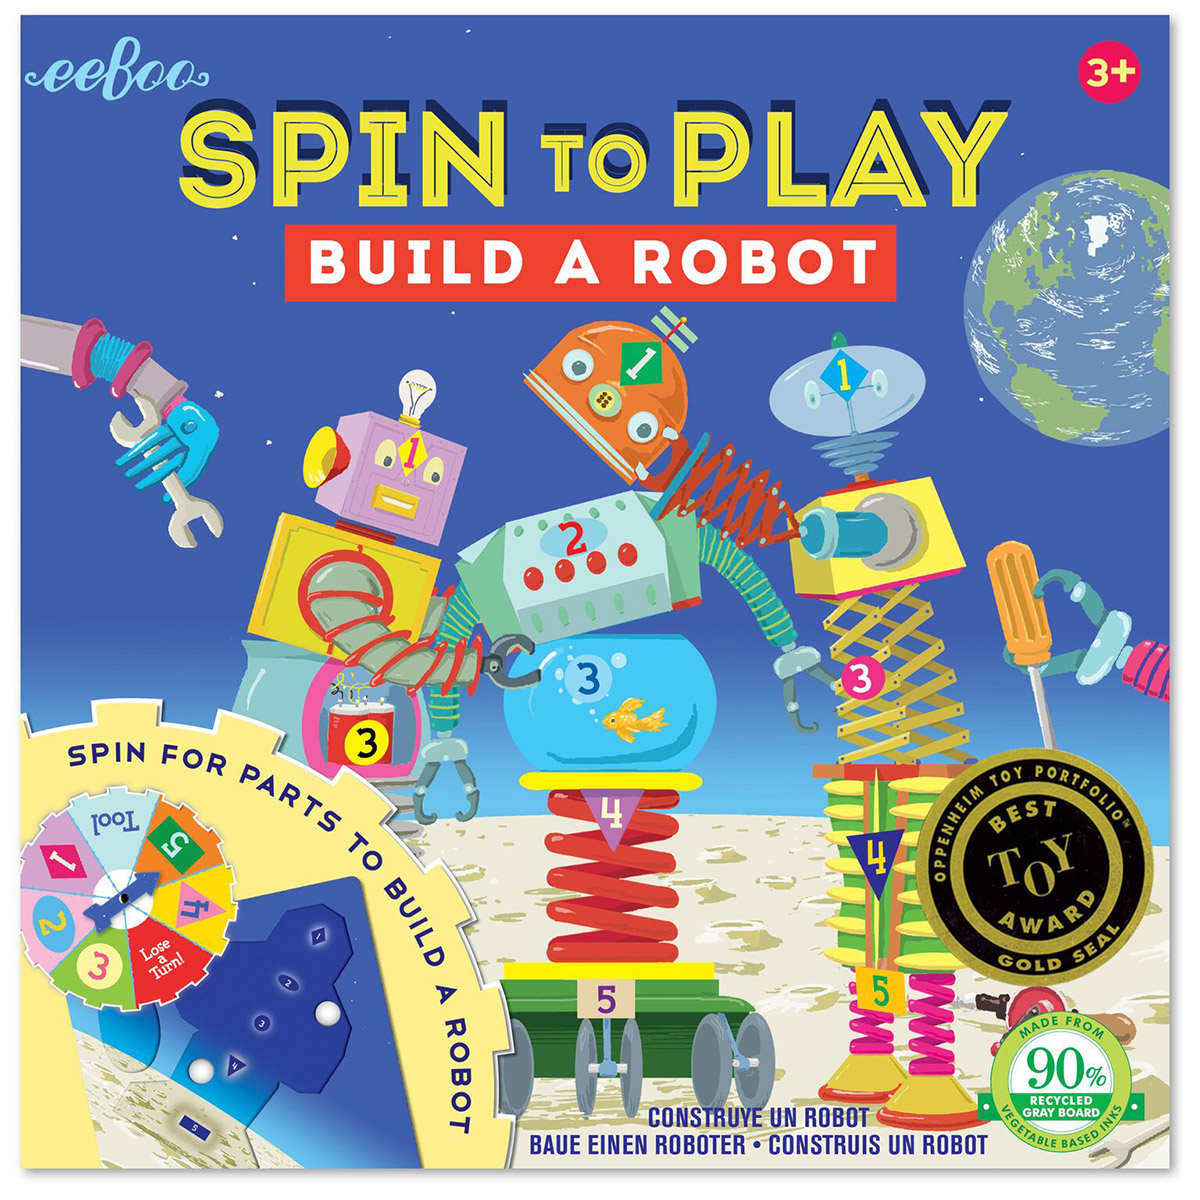 Build A Robot Spinner Puzzle Game Robots Children's Puzzles